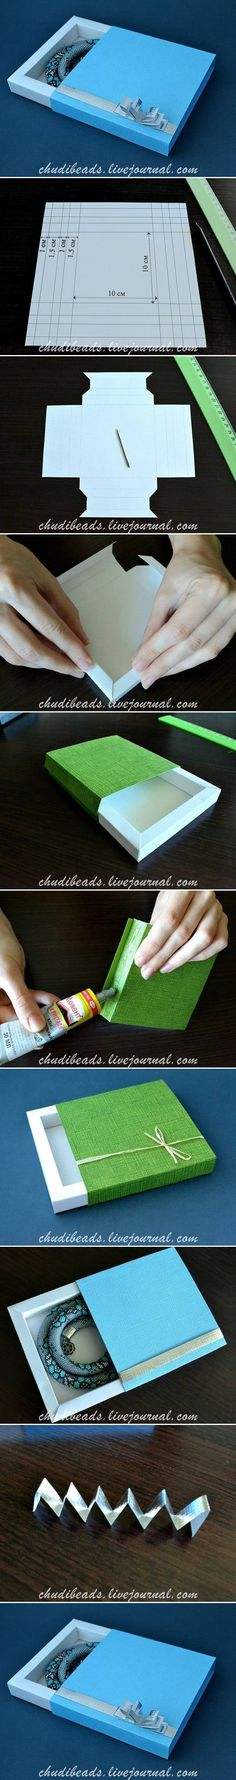 DIY Square Gift Box DIY Projects | UsefulDIY.com